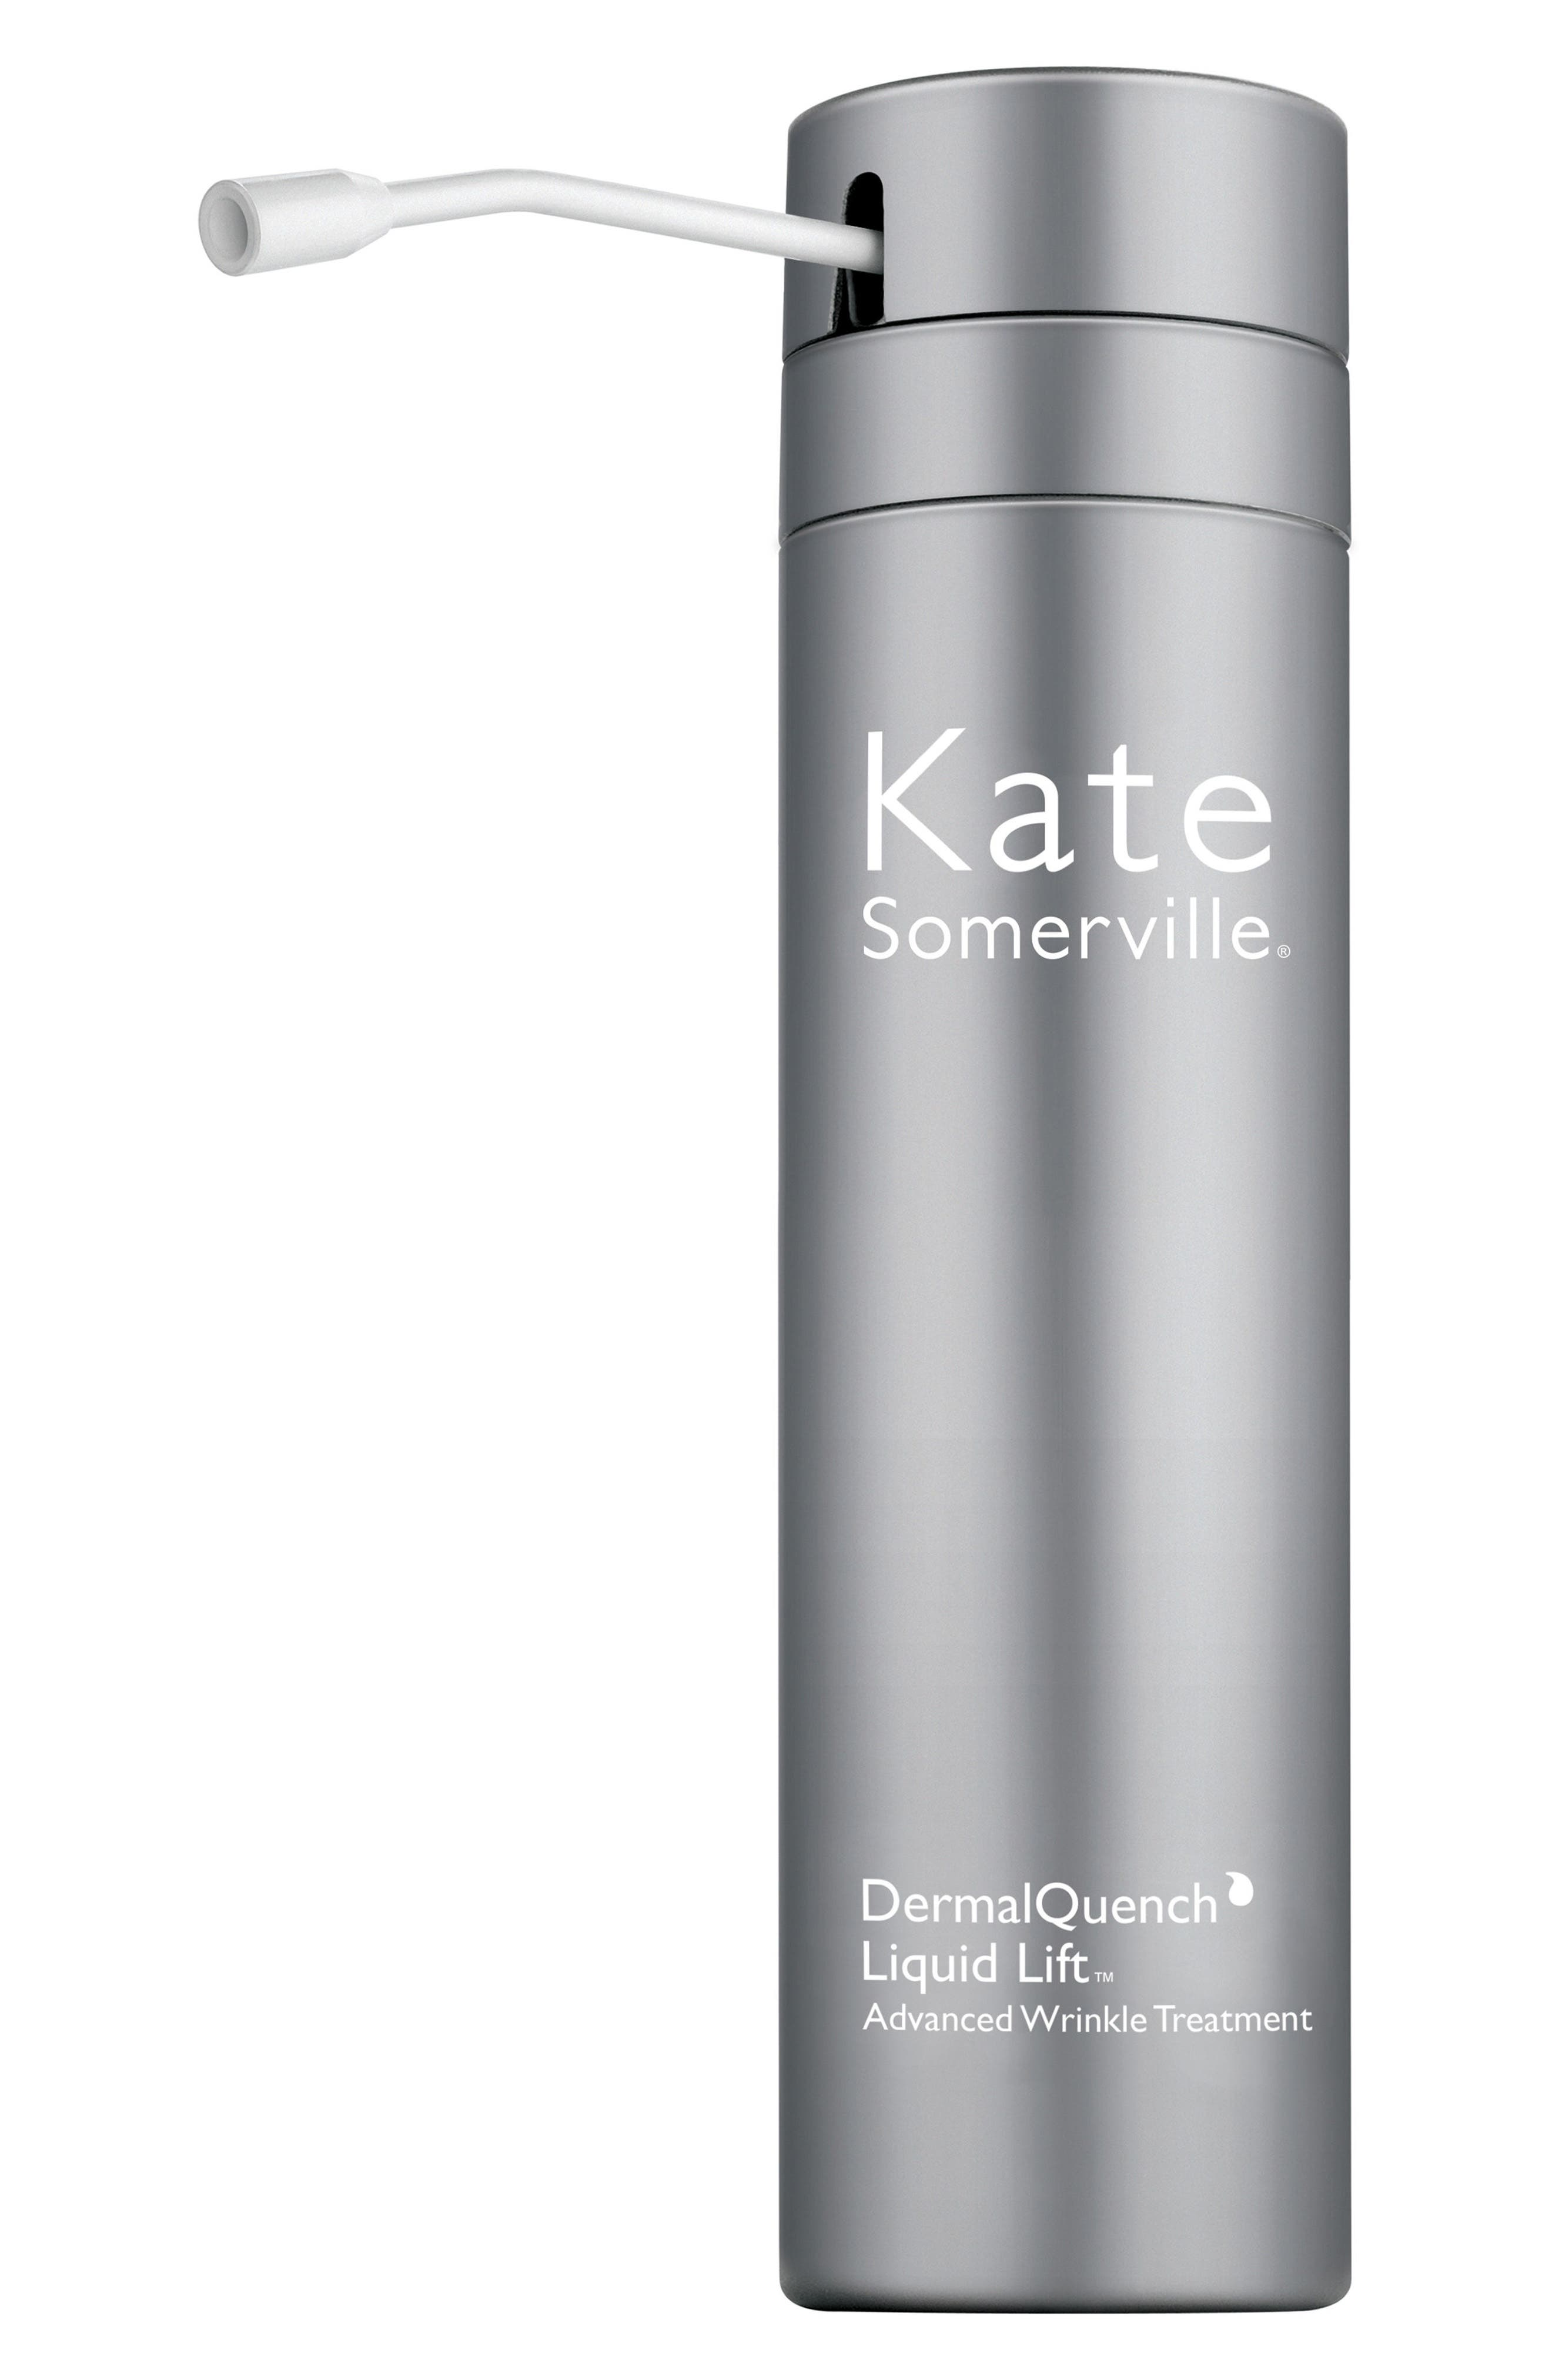 Kate Somerville® DermalQuench Liquid Lift™ Advanced Wrinkle Treatment